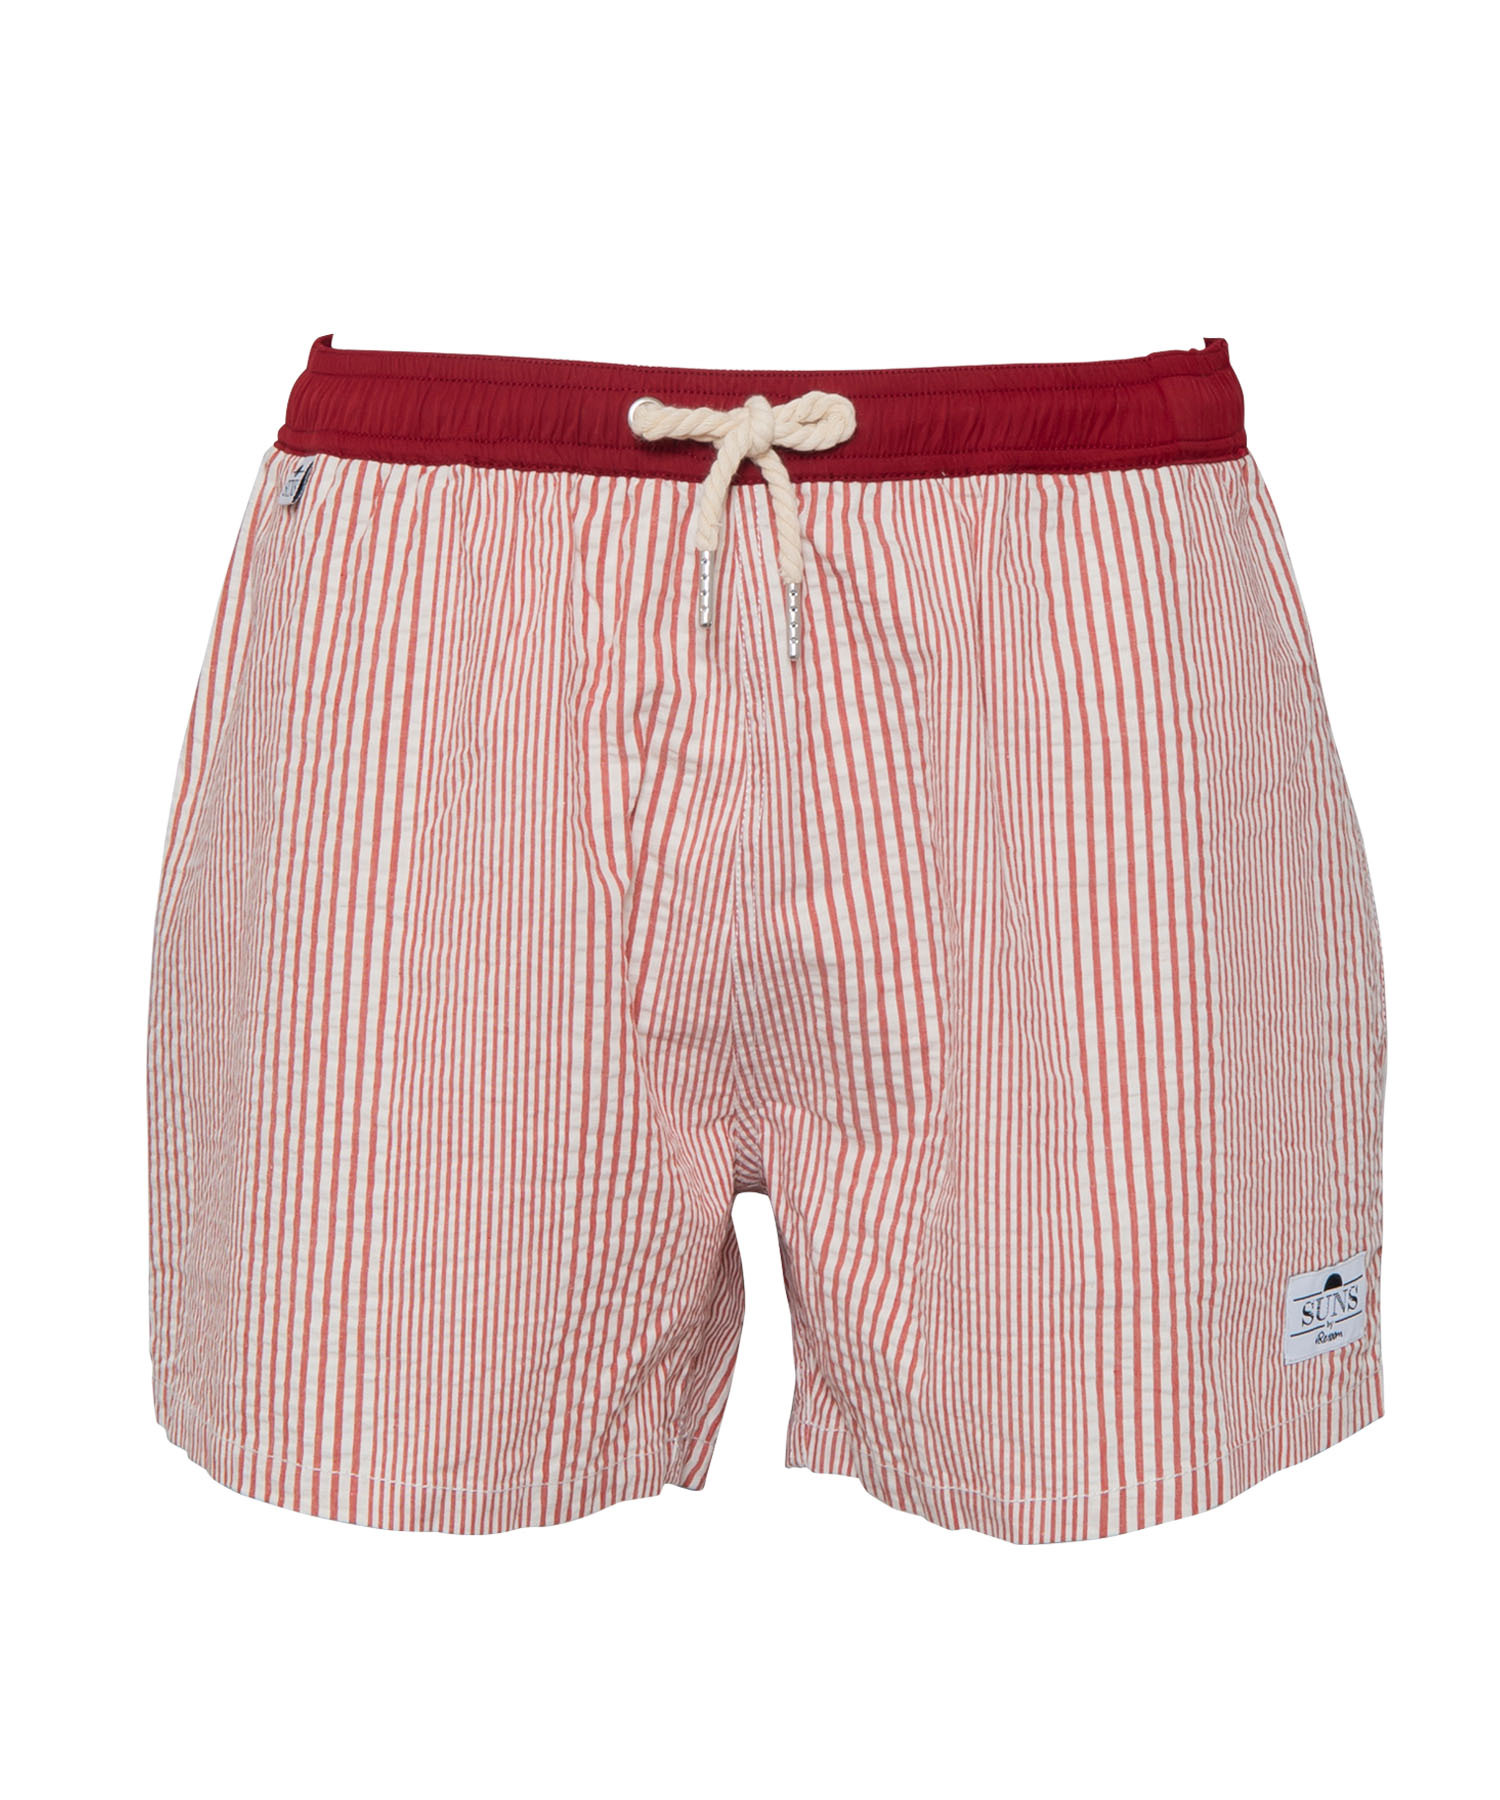 SUNS MULTI STRIPE SWIM SHORTS[RSW022]